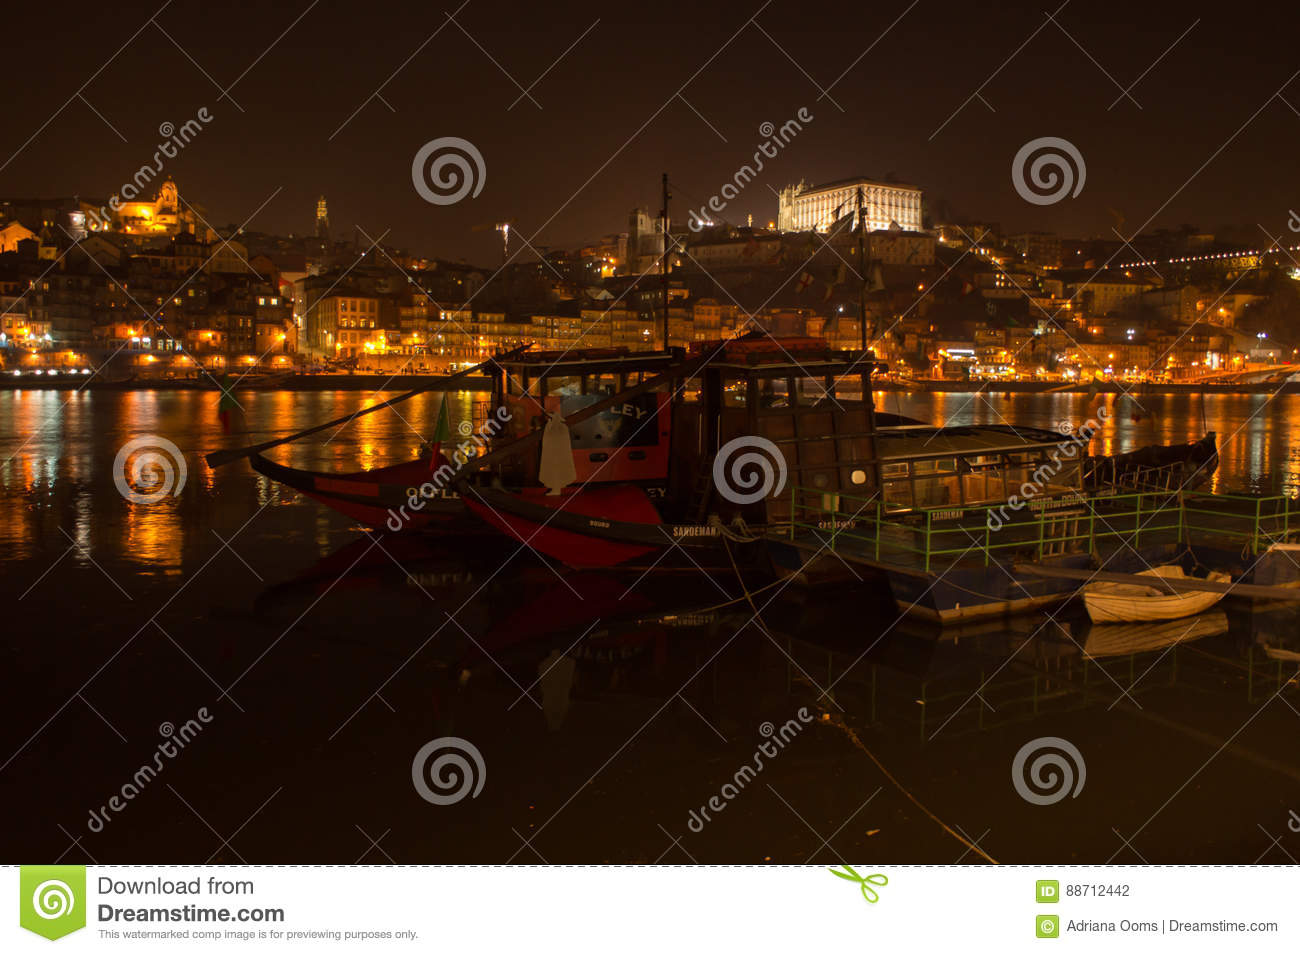 Barcos rabelos in the Douro river